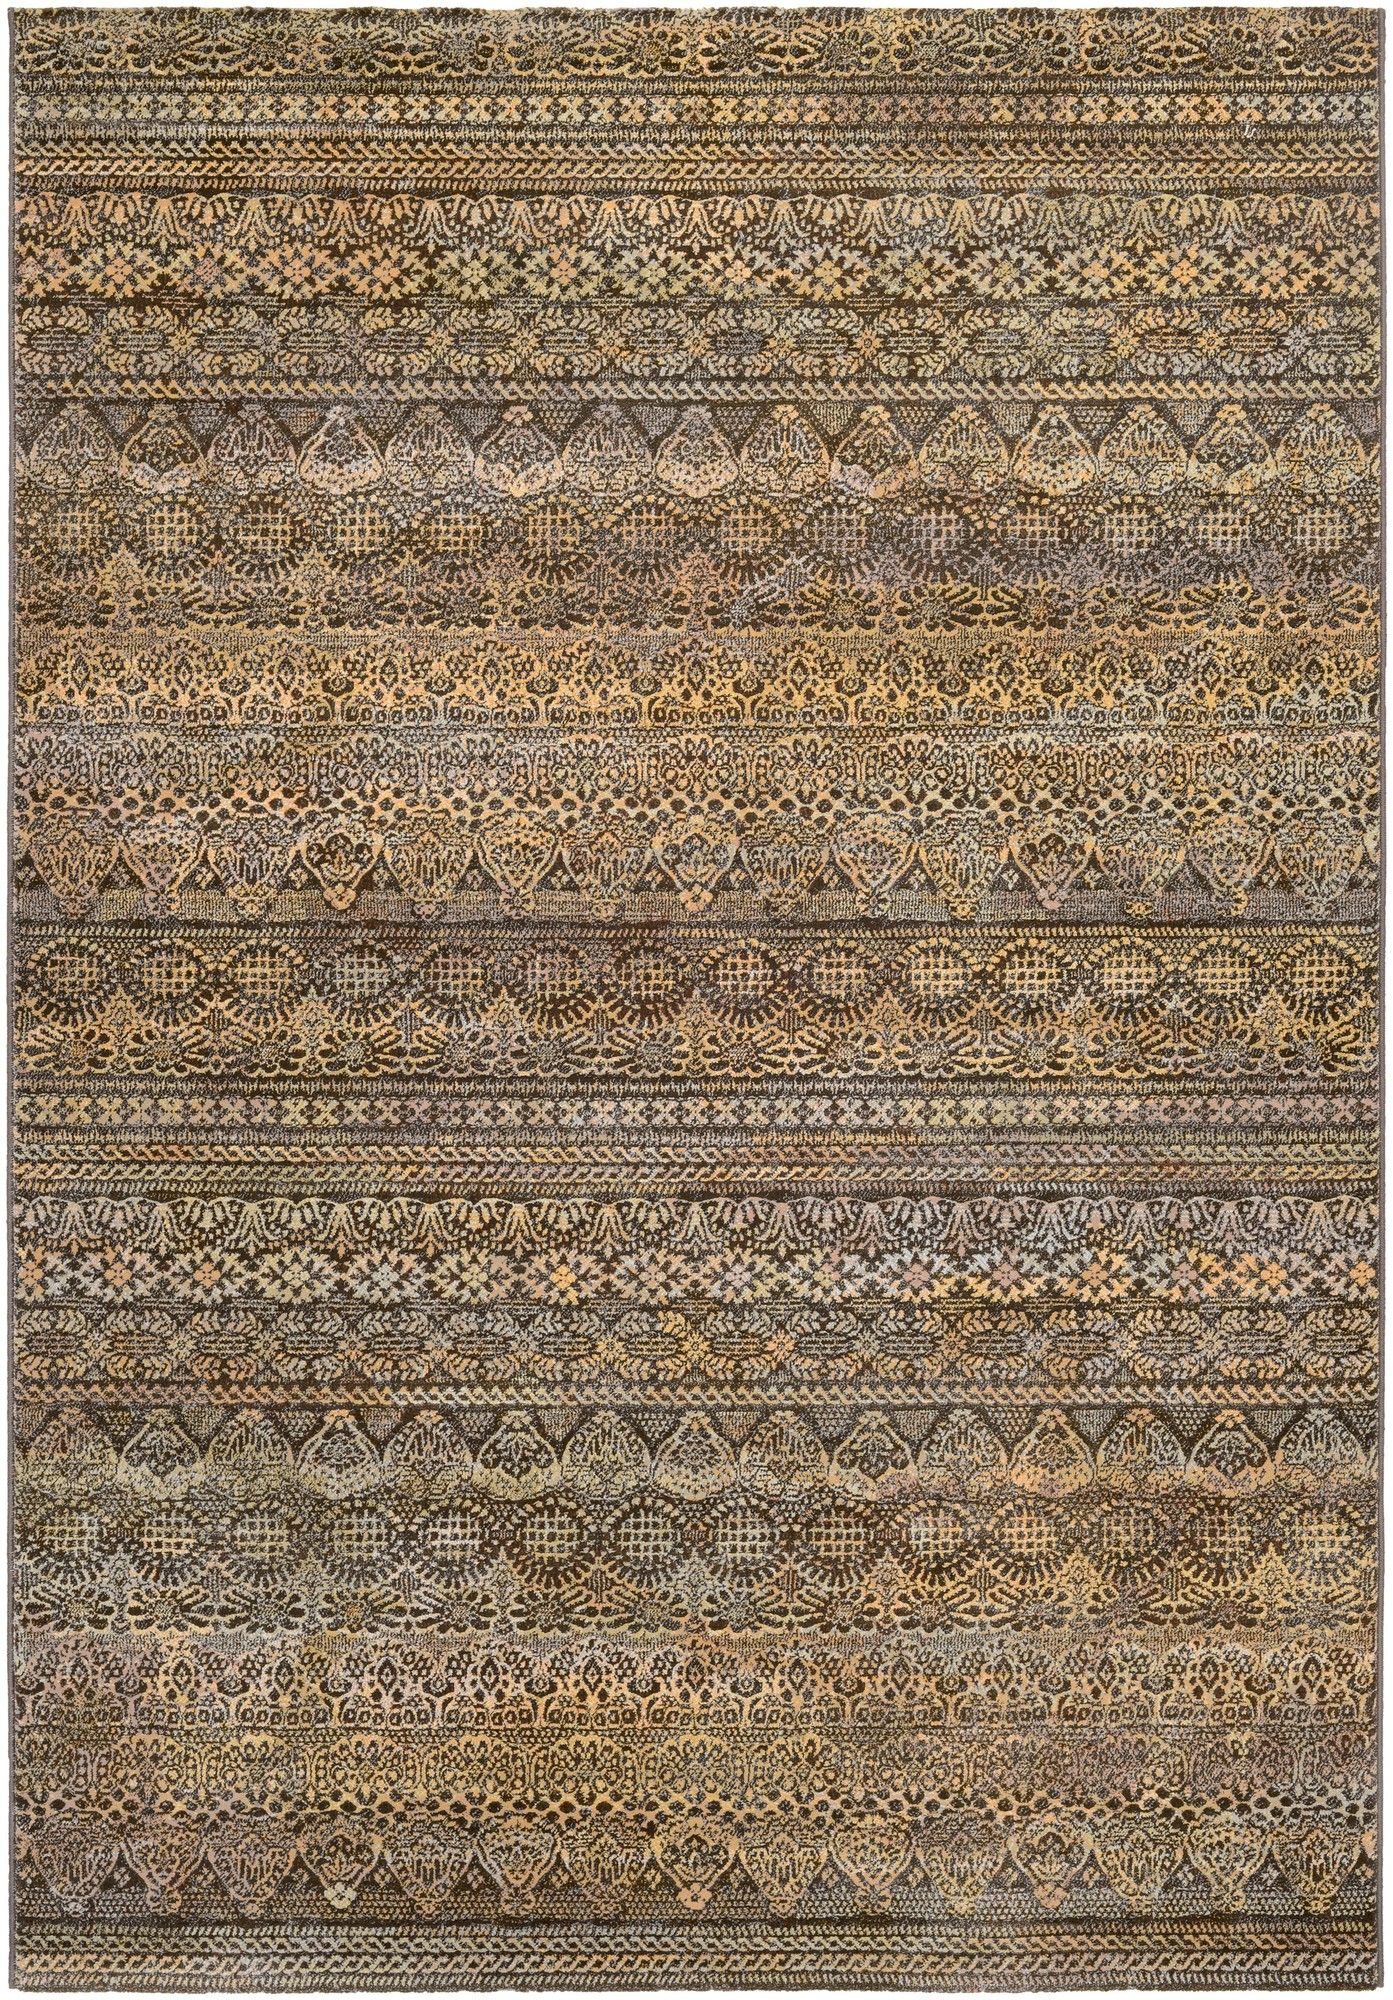 Dahab Abstract Brown Gray Yellow Area Rug Plush Area Rugs Area